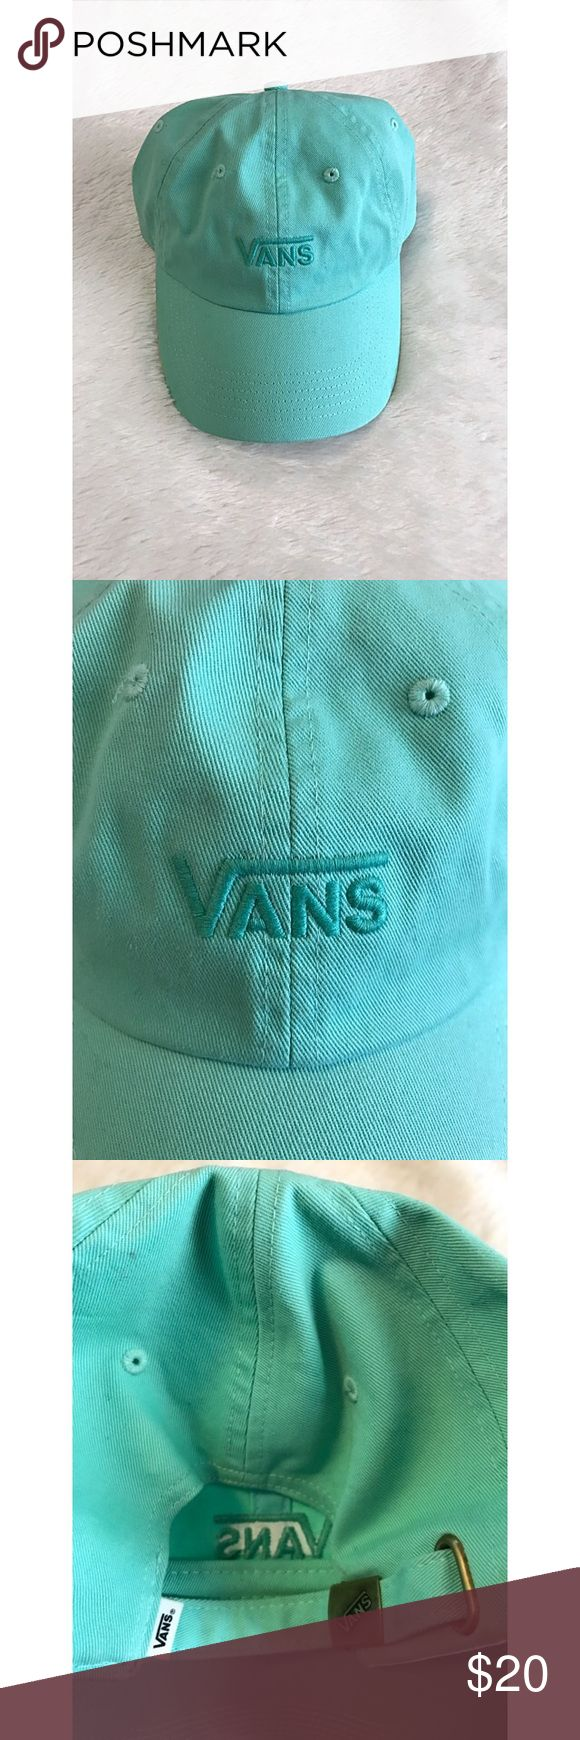 Mint Vans Hat ☀️ New without tags, never worn. Great for summer ☀️ Vans Accessories Hats